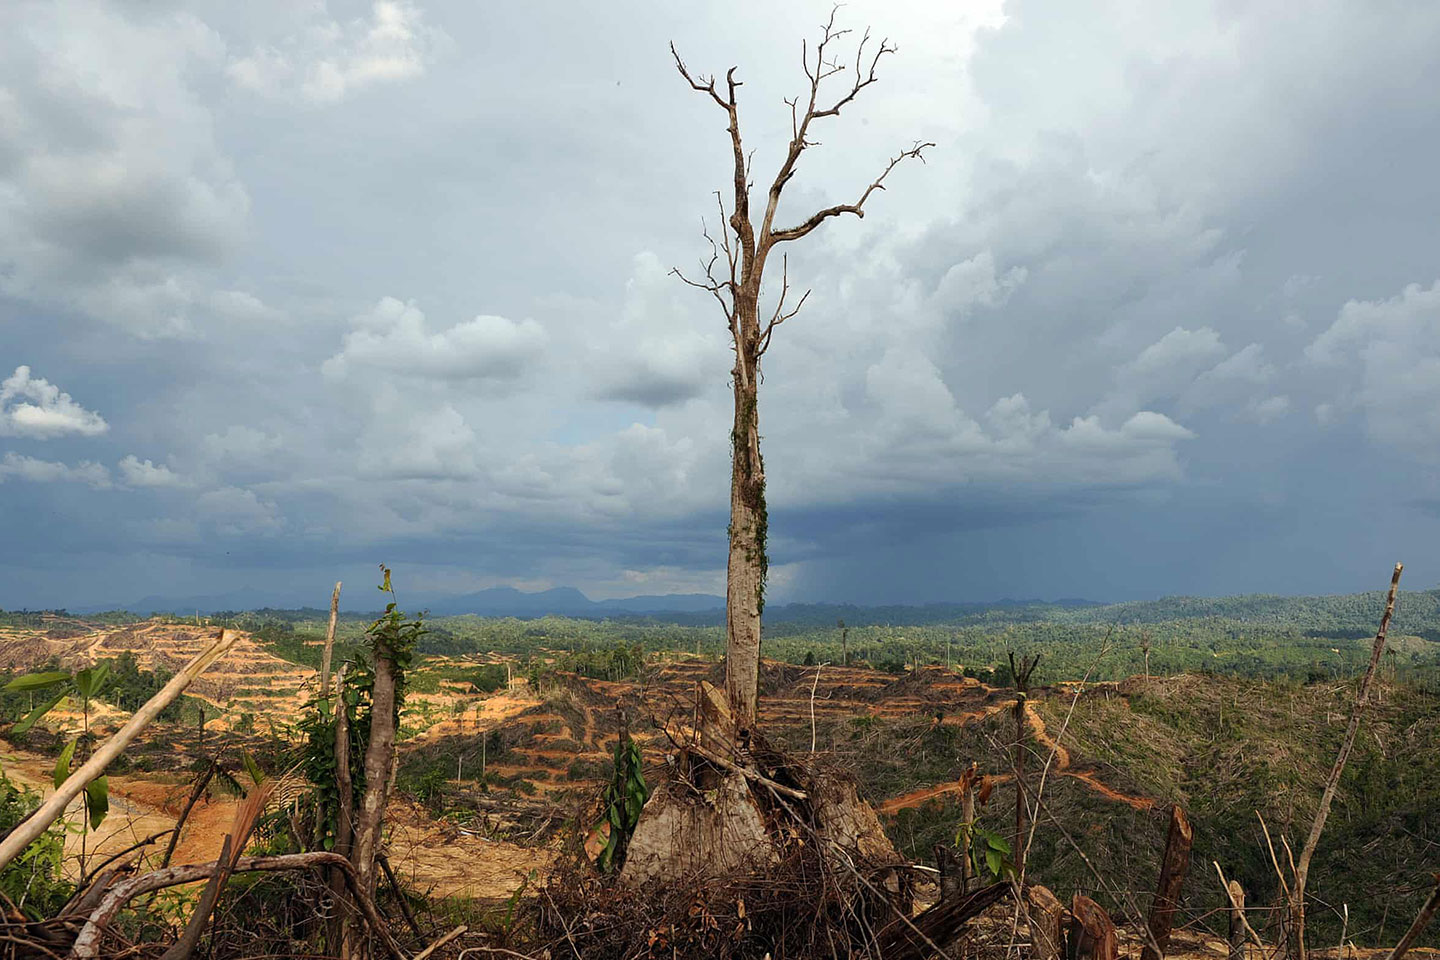 Image from The Guardian article: A tree stands alone in a logged area prepared for plantation near Lapok in Malaysia's Sarawak State. Photograph: Saeed Khan/AFP/Getty Images